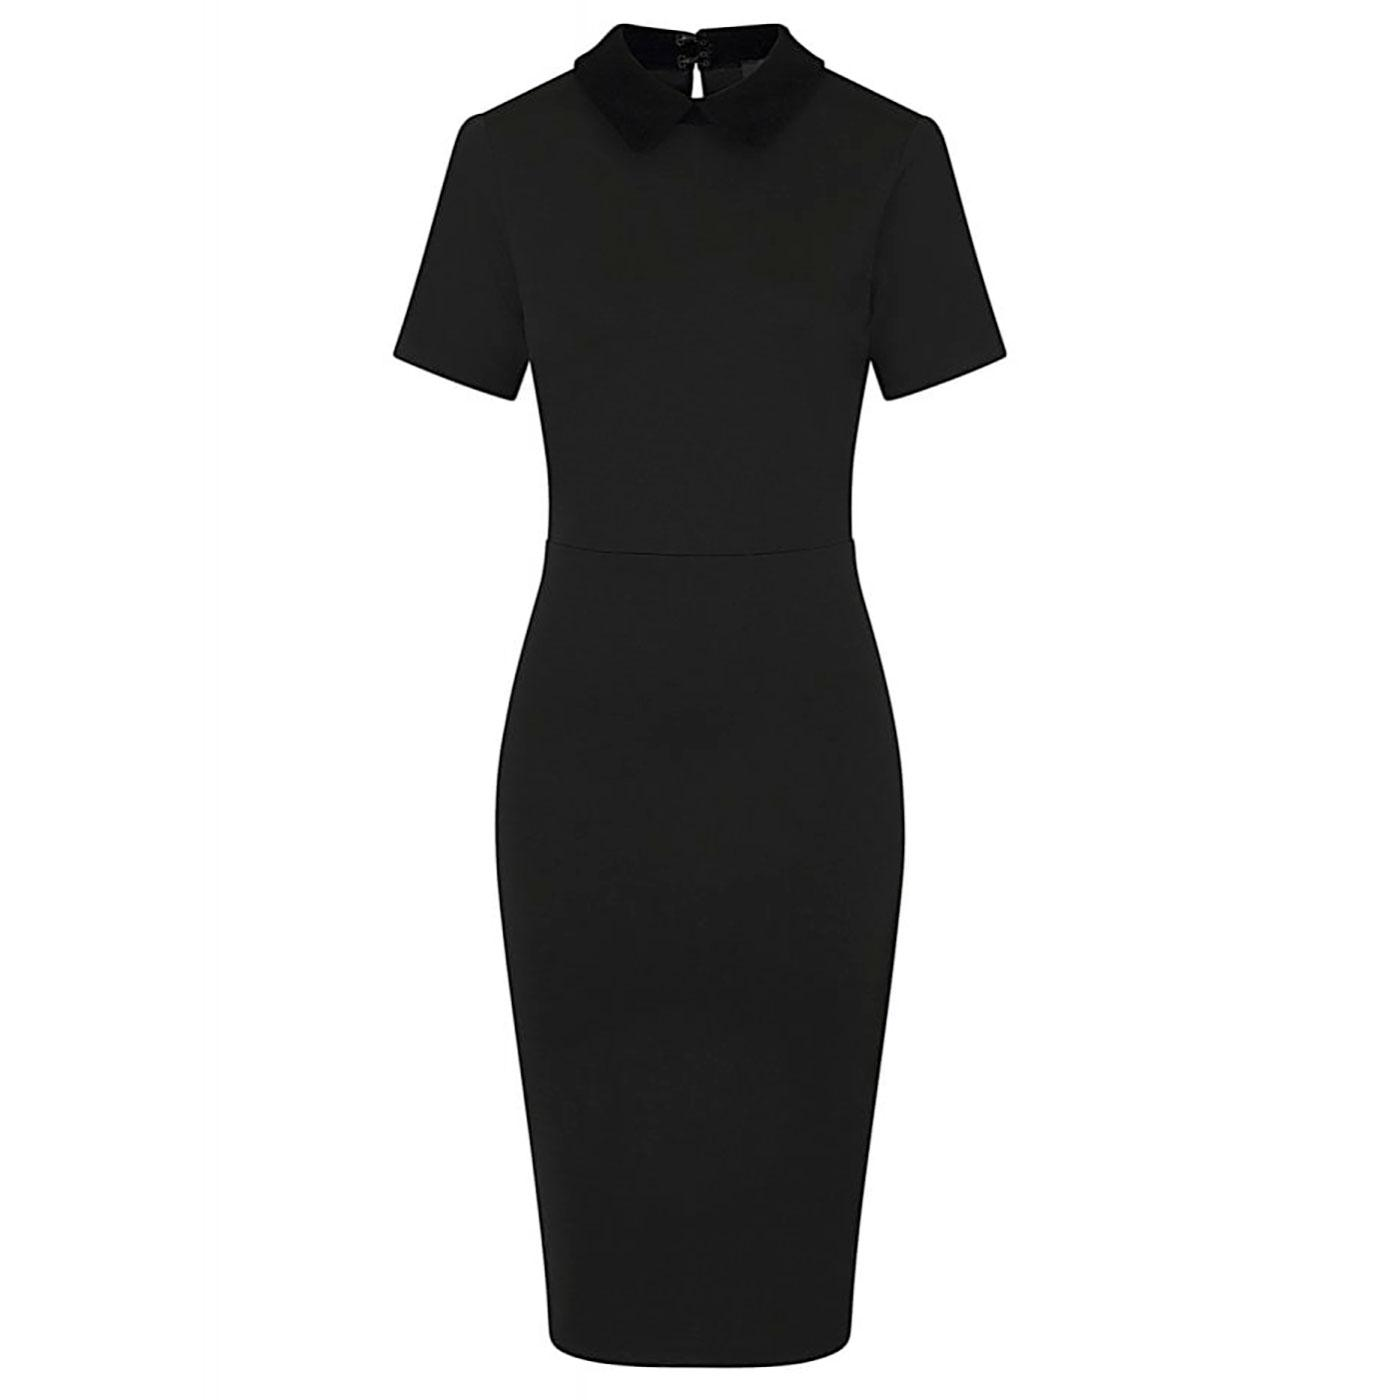 Katy COLLECTIF Peter Pan Collar 50s Pencil Dress